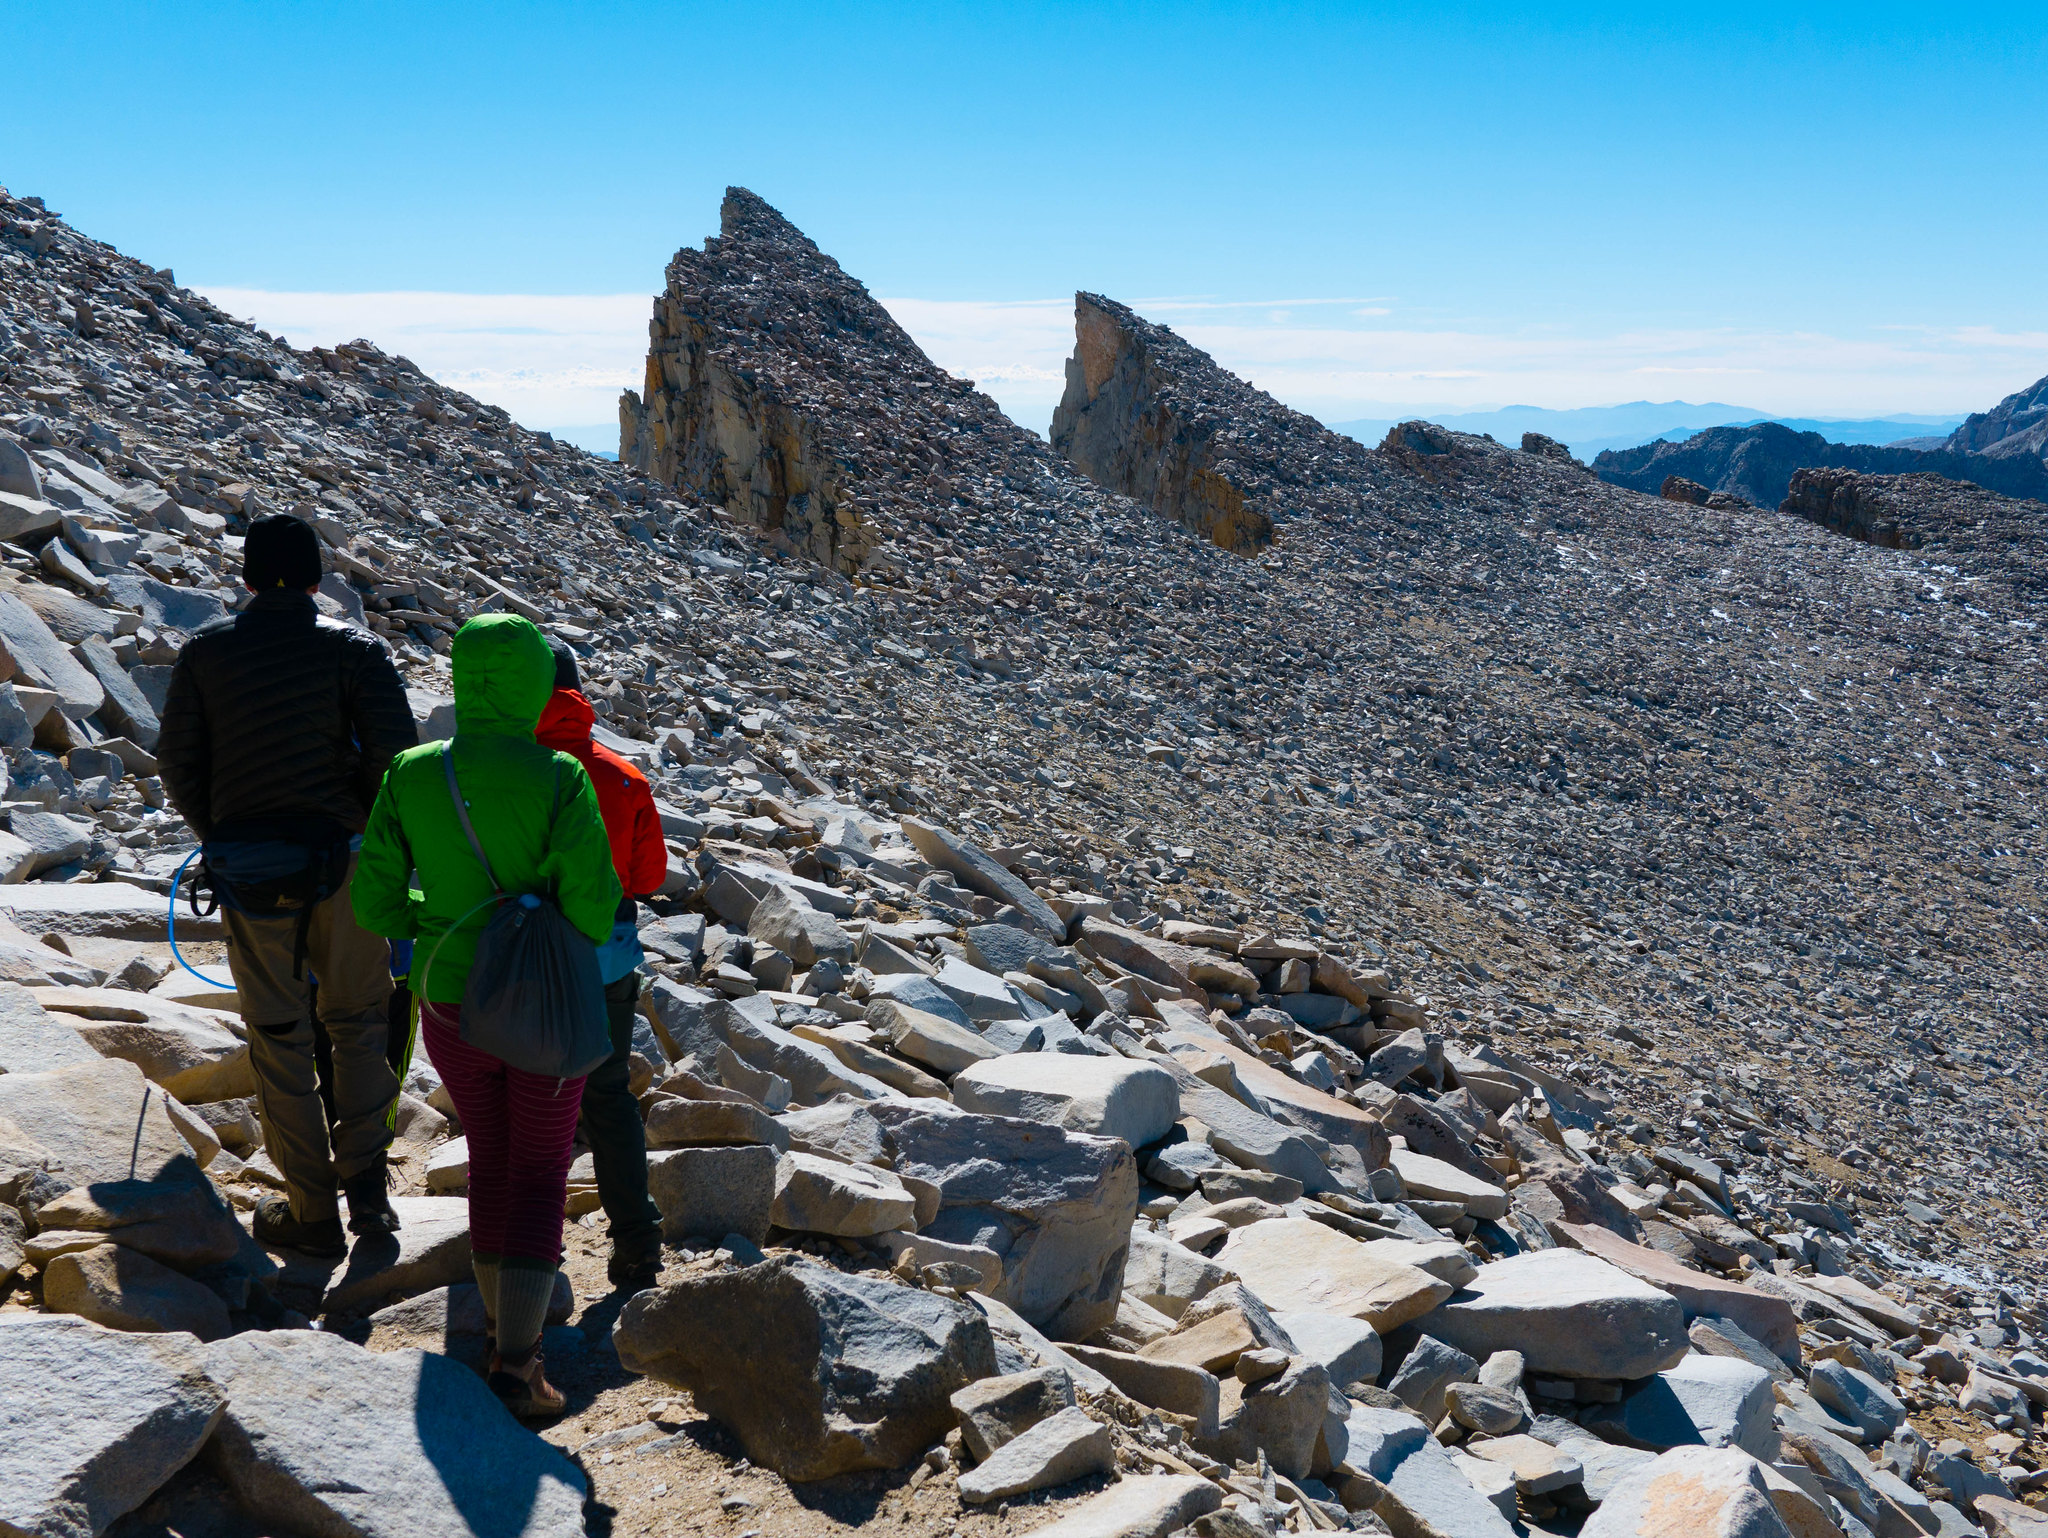 Heading down from the summit of Mount Whitney